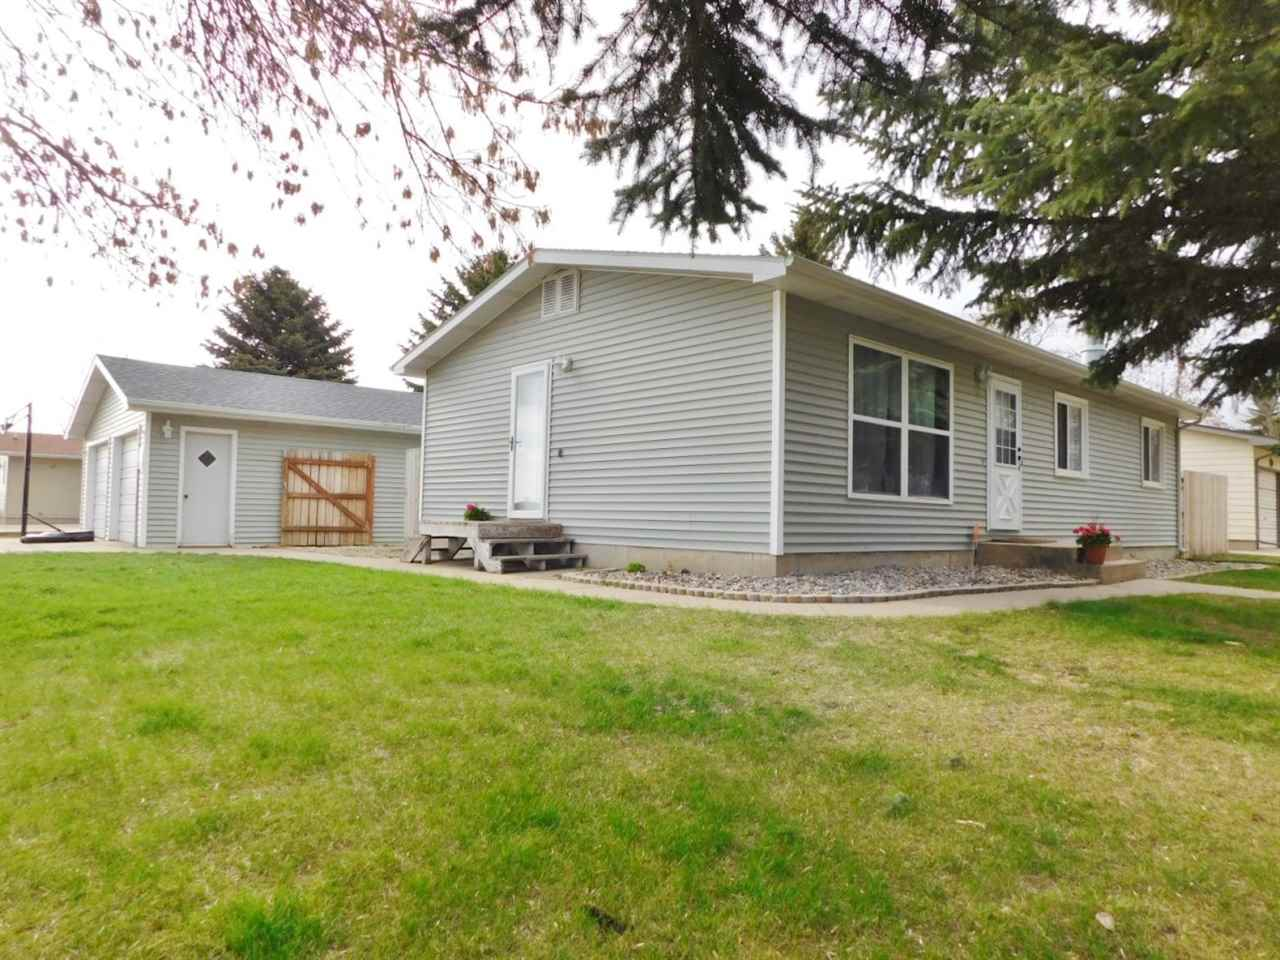 2510 NW 8th St, Minot, ND 58701